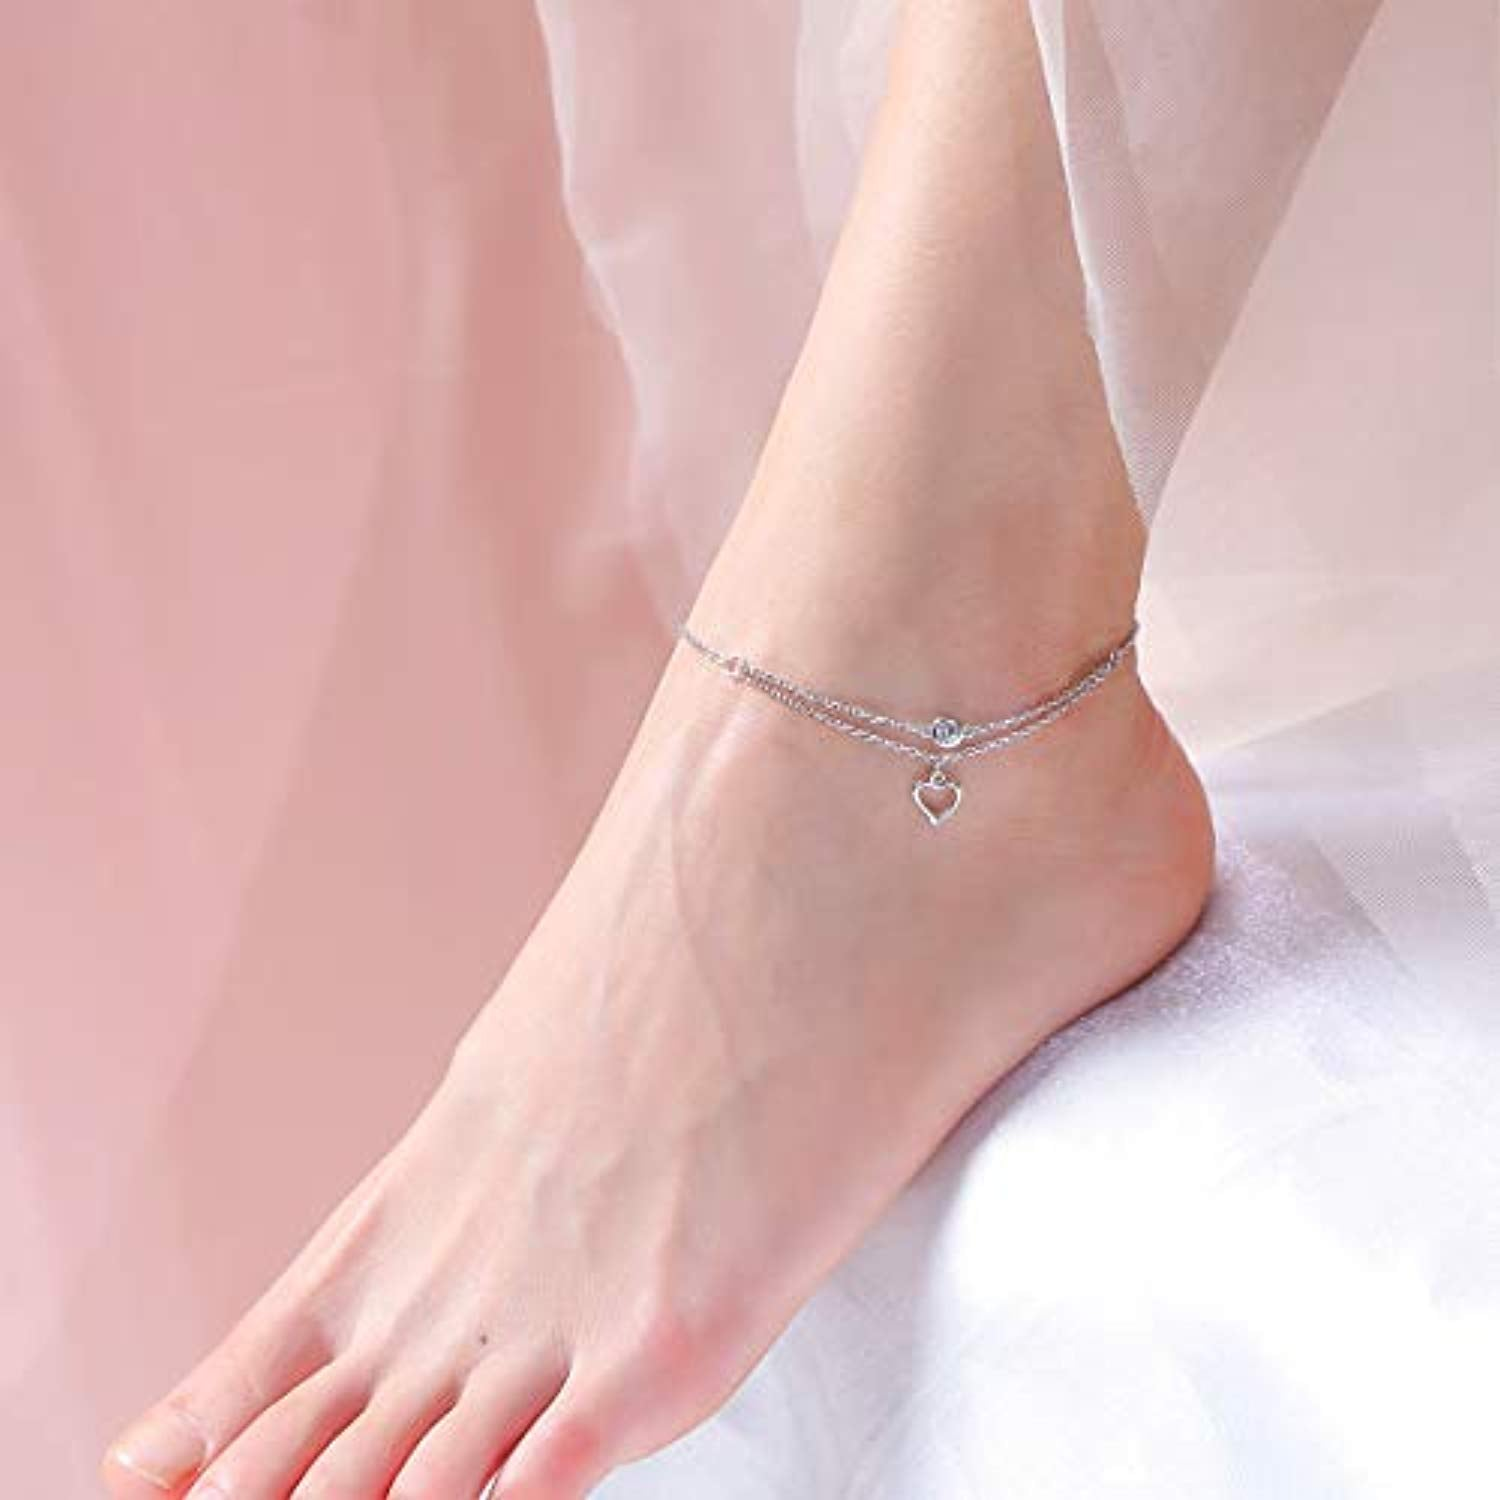 S925 Sterling Silver Adjustable Foot Ankle Bracelet